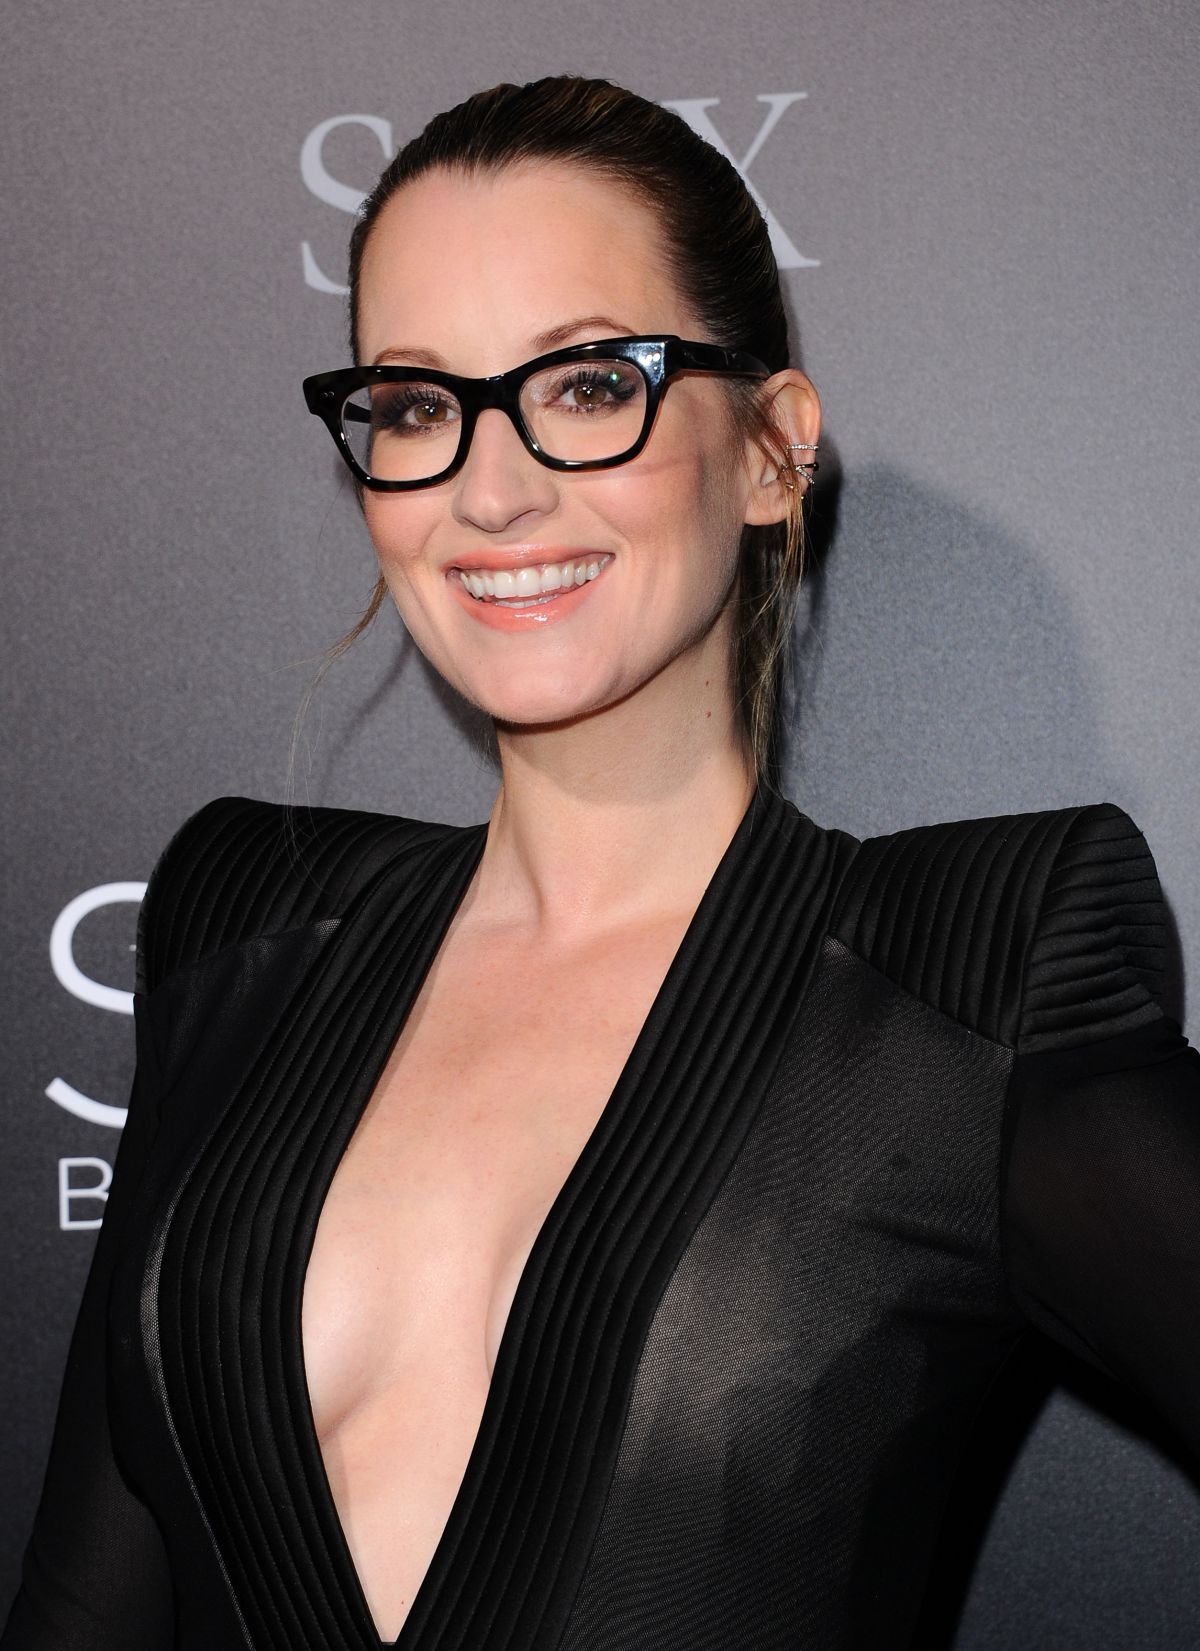 INGRID MICHAELSON at 'The Space Between Us' Premiere in Los Angeles 01/17/2017